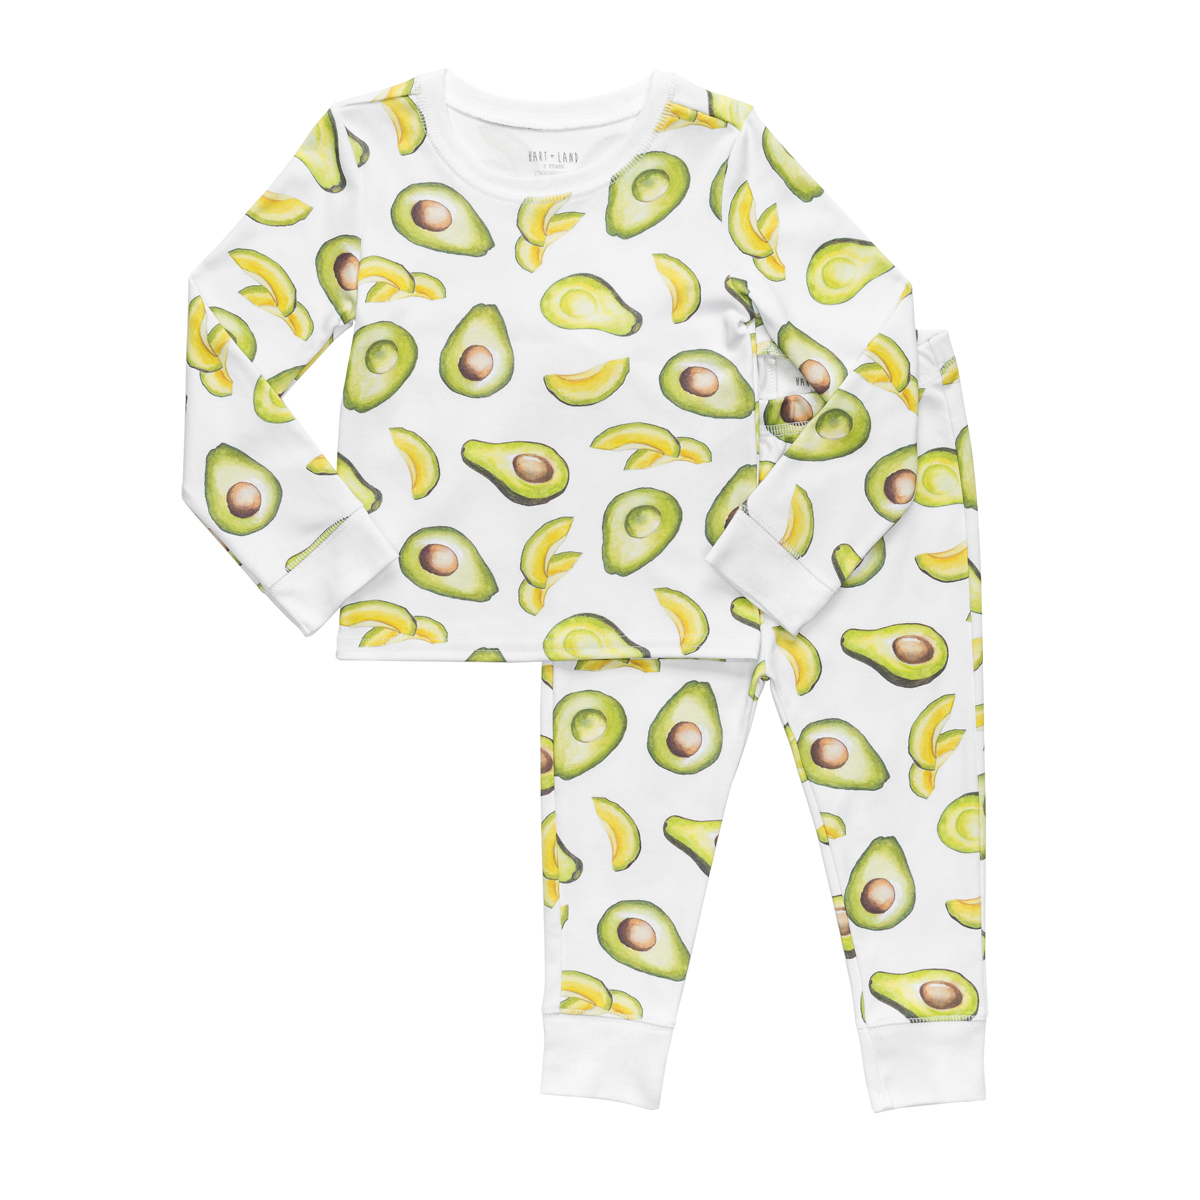 Hart + Land PJ Set in Avocado Print